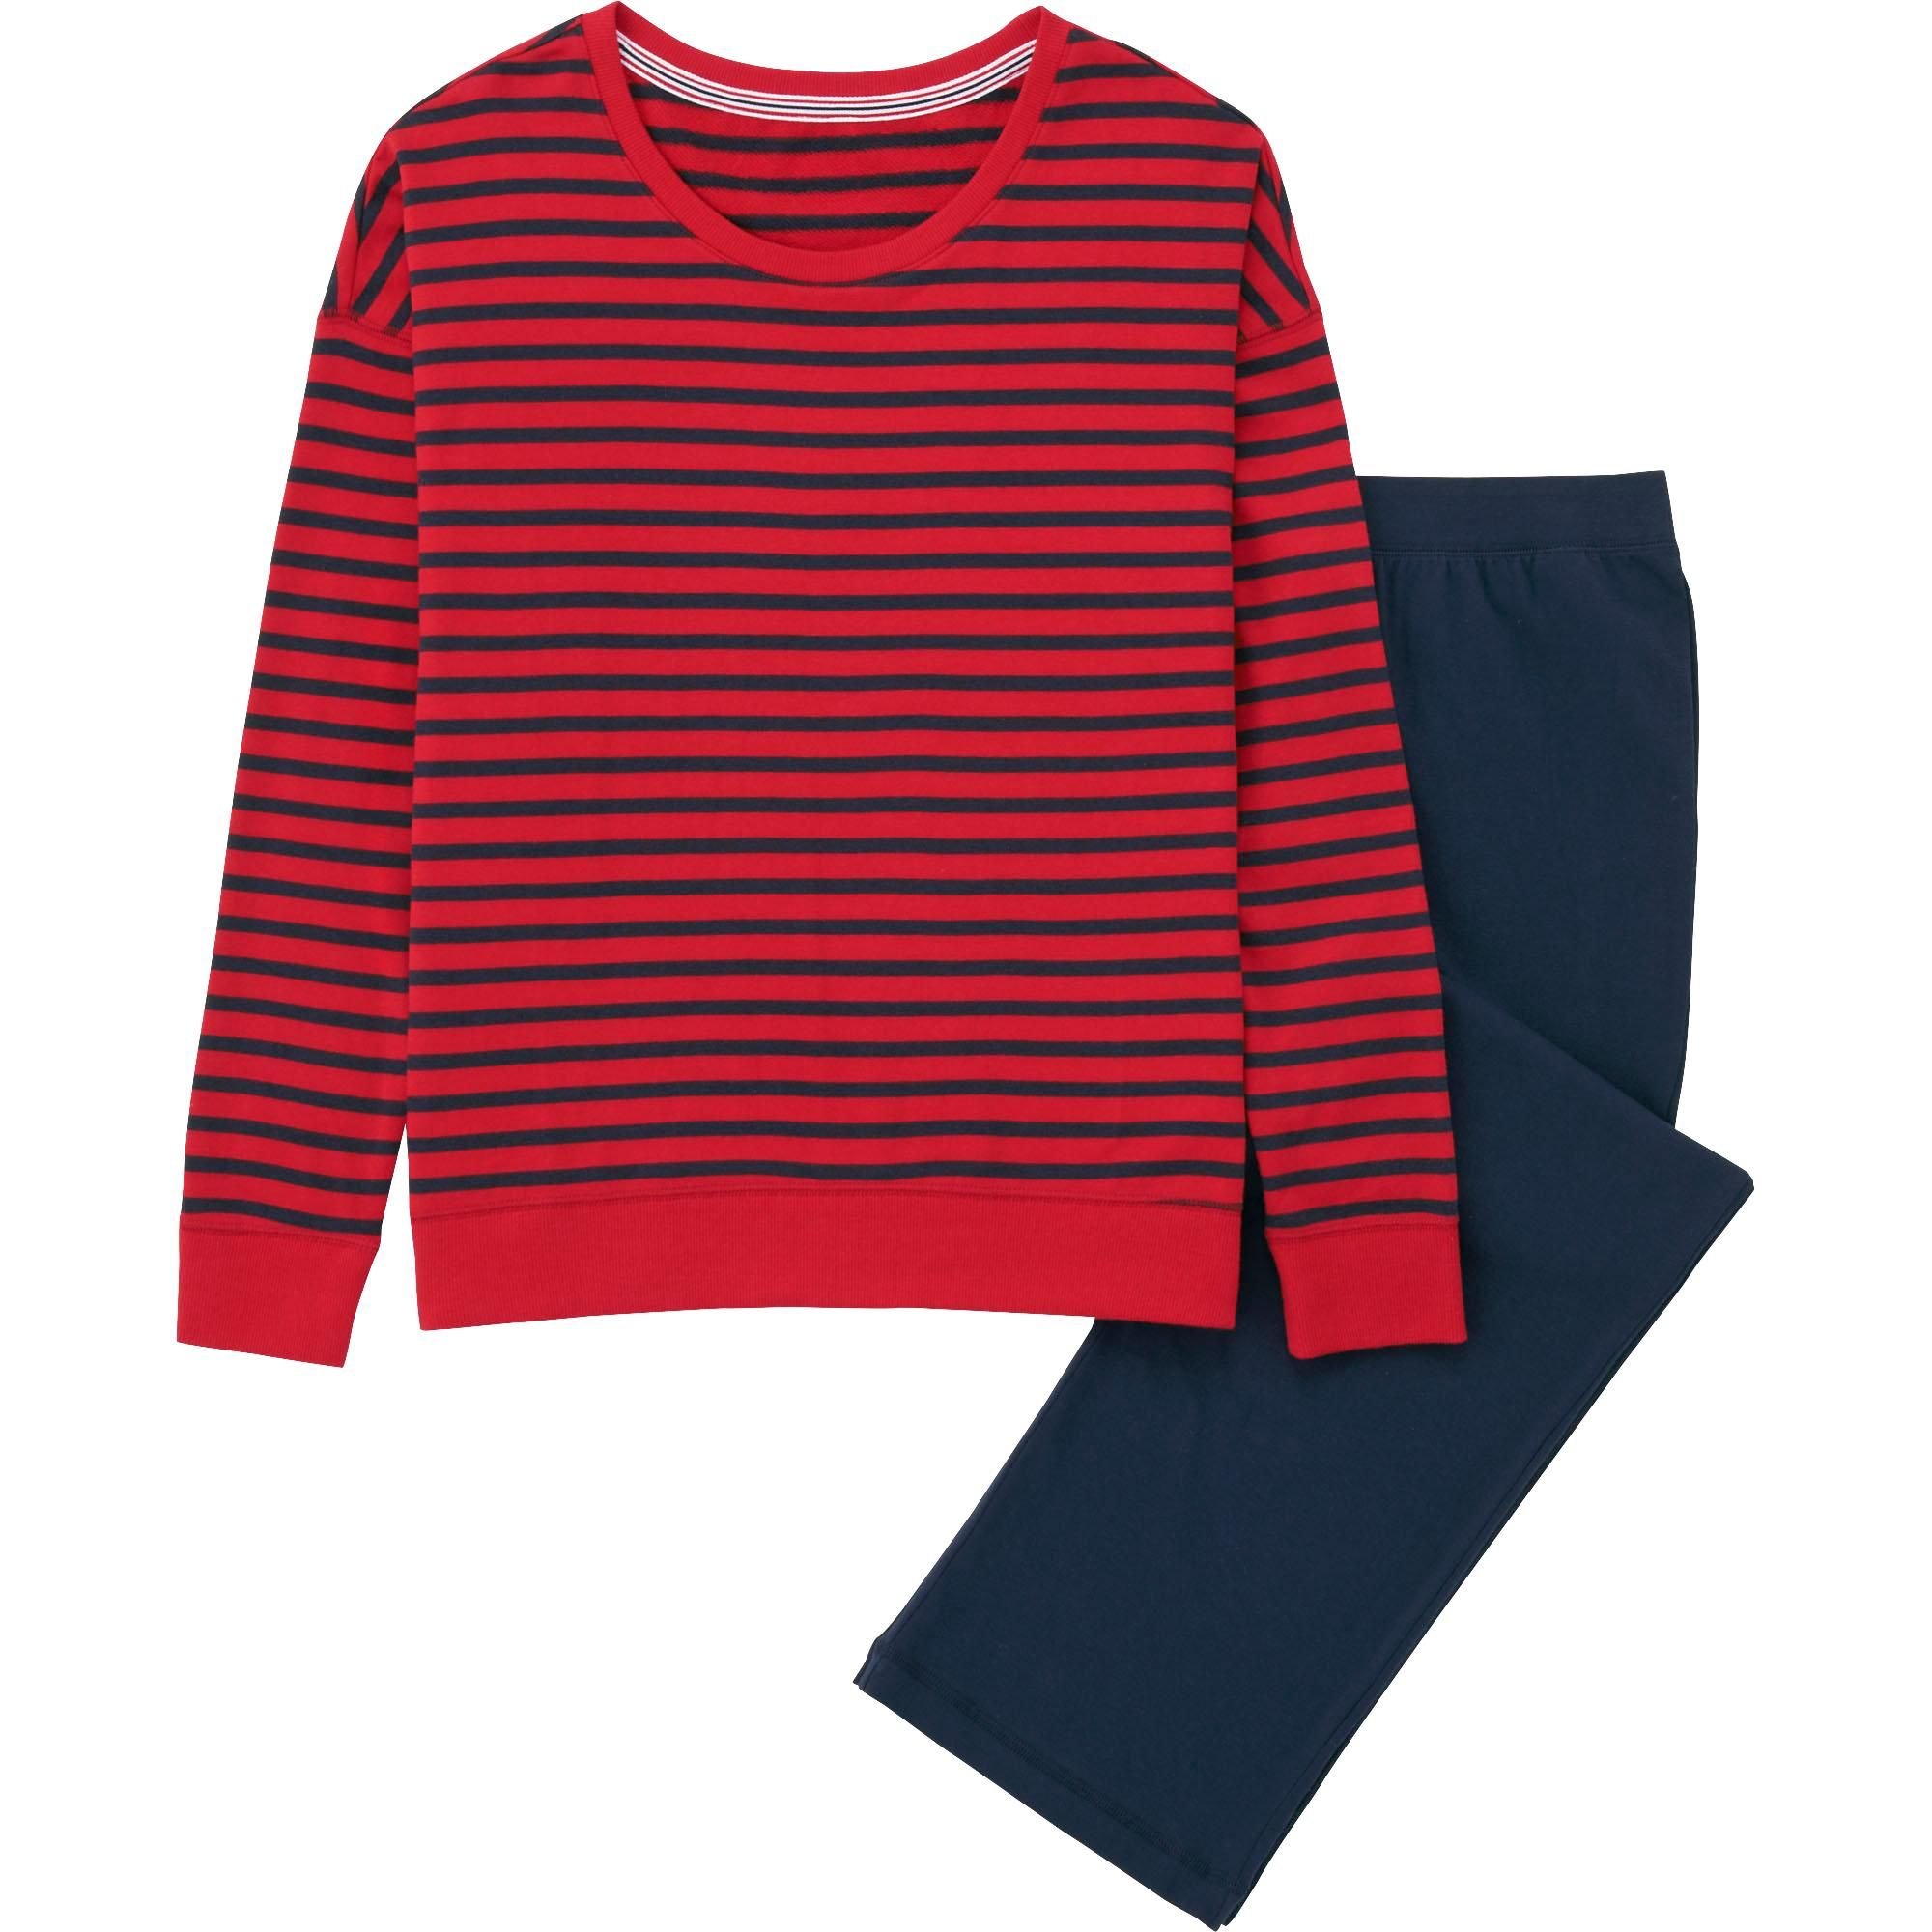 "<p>Uniqlo Women Sweat Set, $20; <a href=""http://www.uniqlo.com/us/product/women-sweat-set-long-sleeve-stripe-151868.html#16~/women/intimates-and-loungewear/pajamas/sweat-sets/~"">uniqlo.com</a></p>"